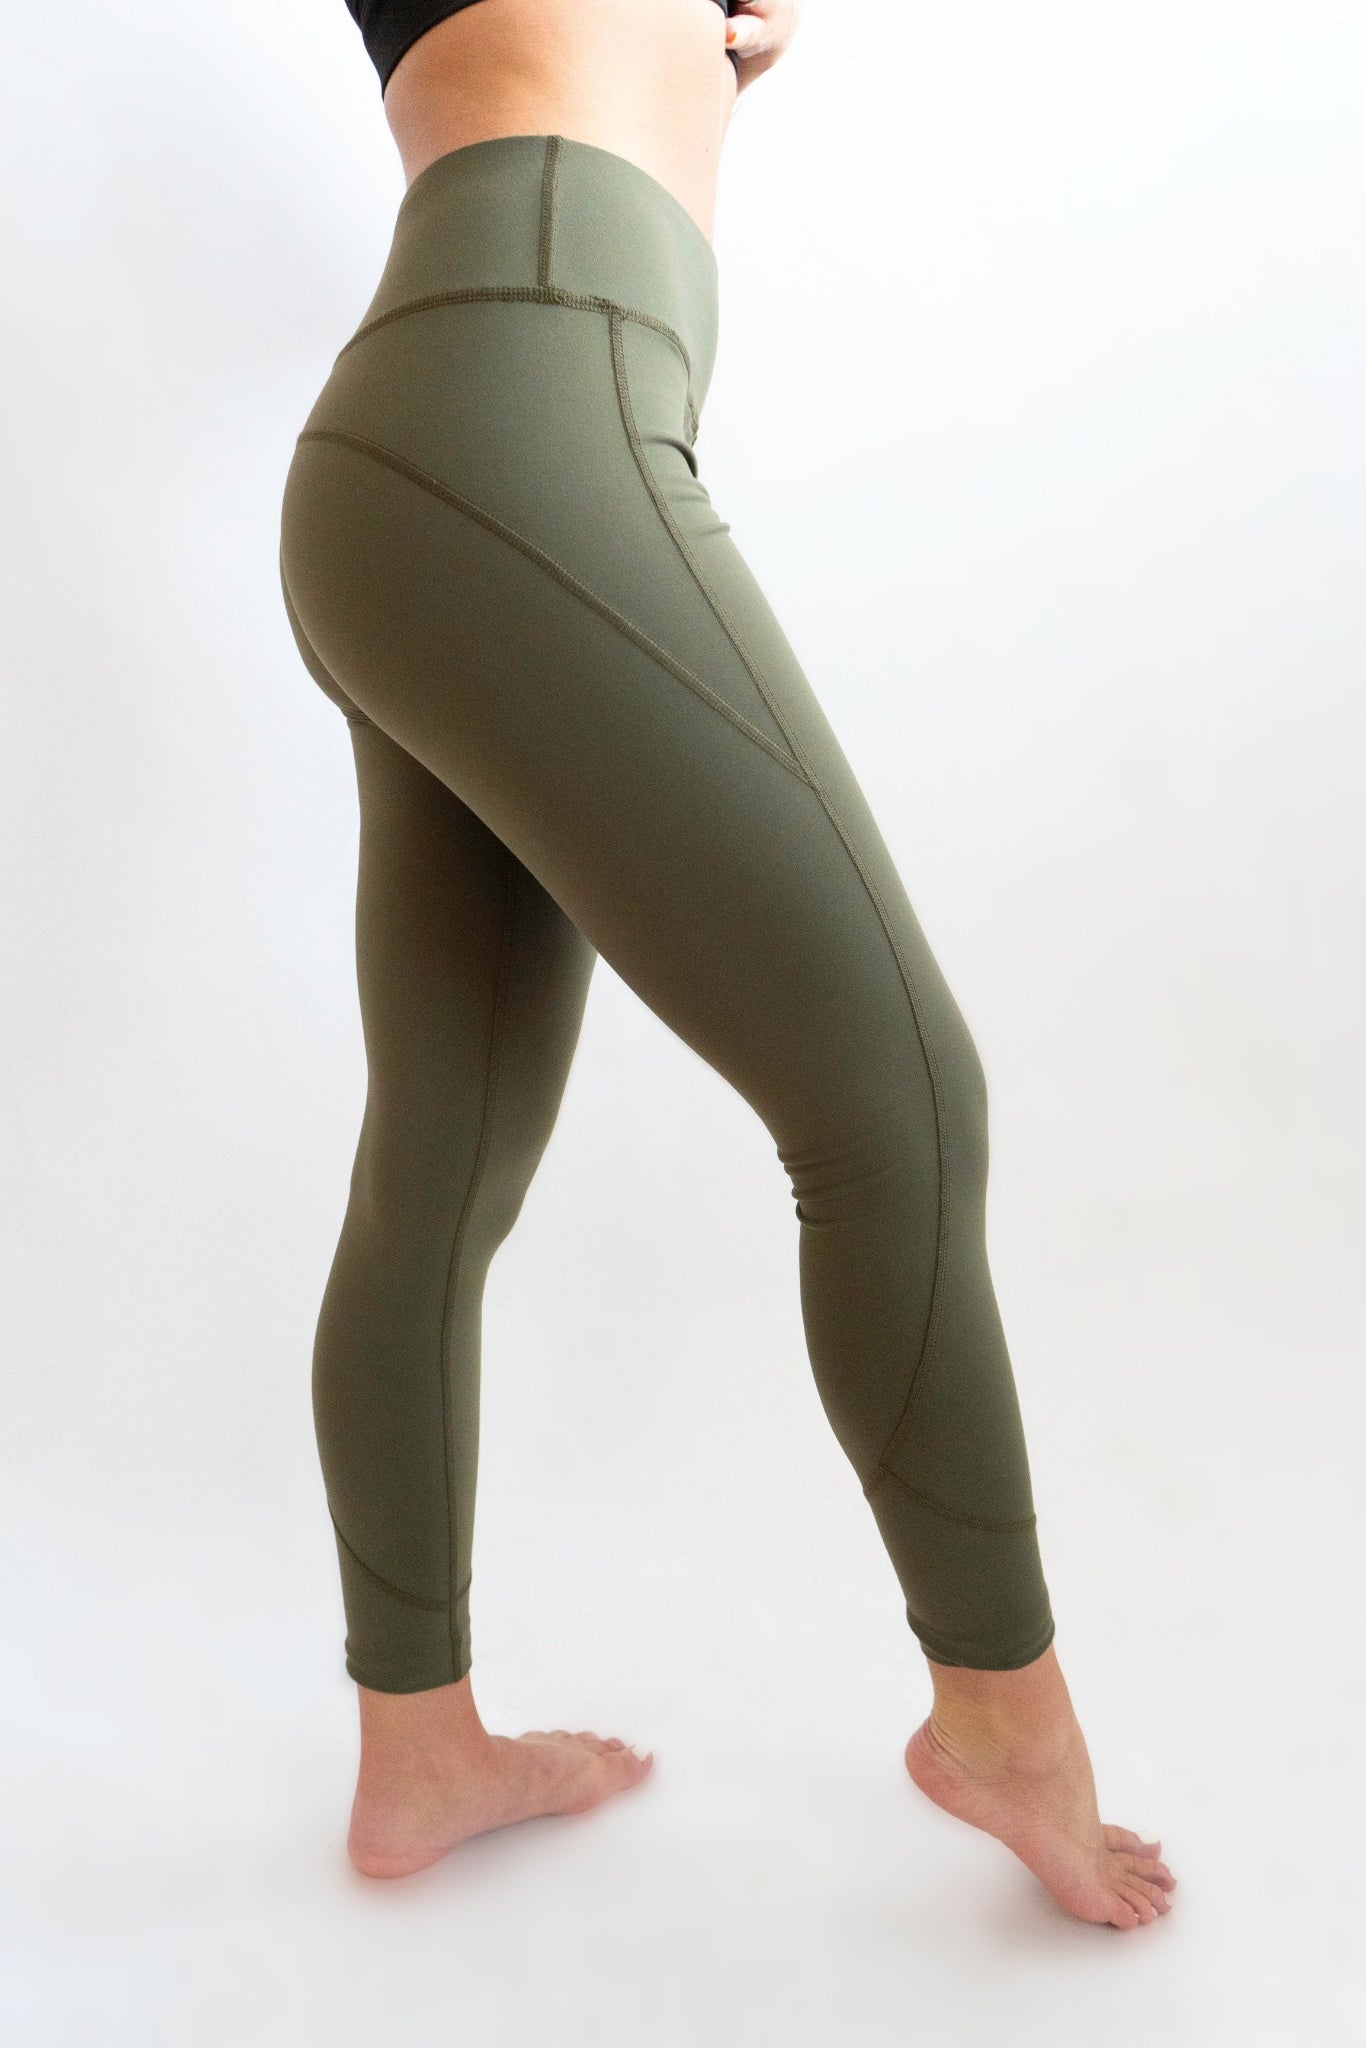 Peach Fit Olive Green